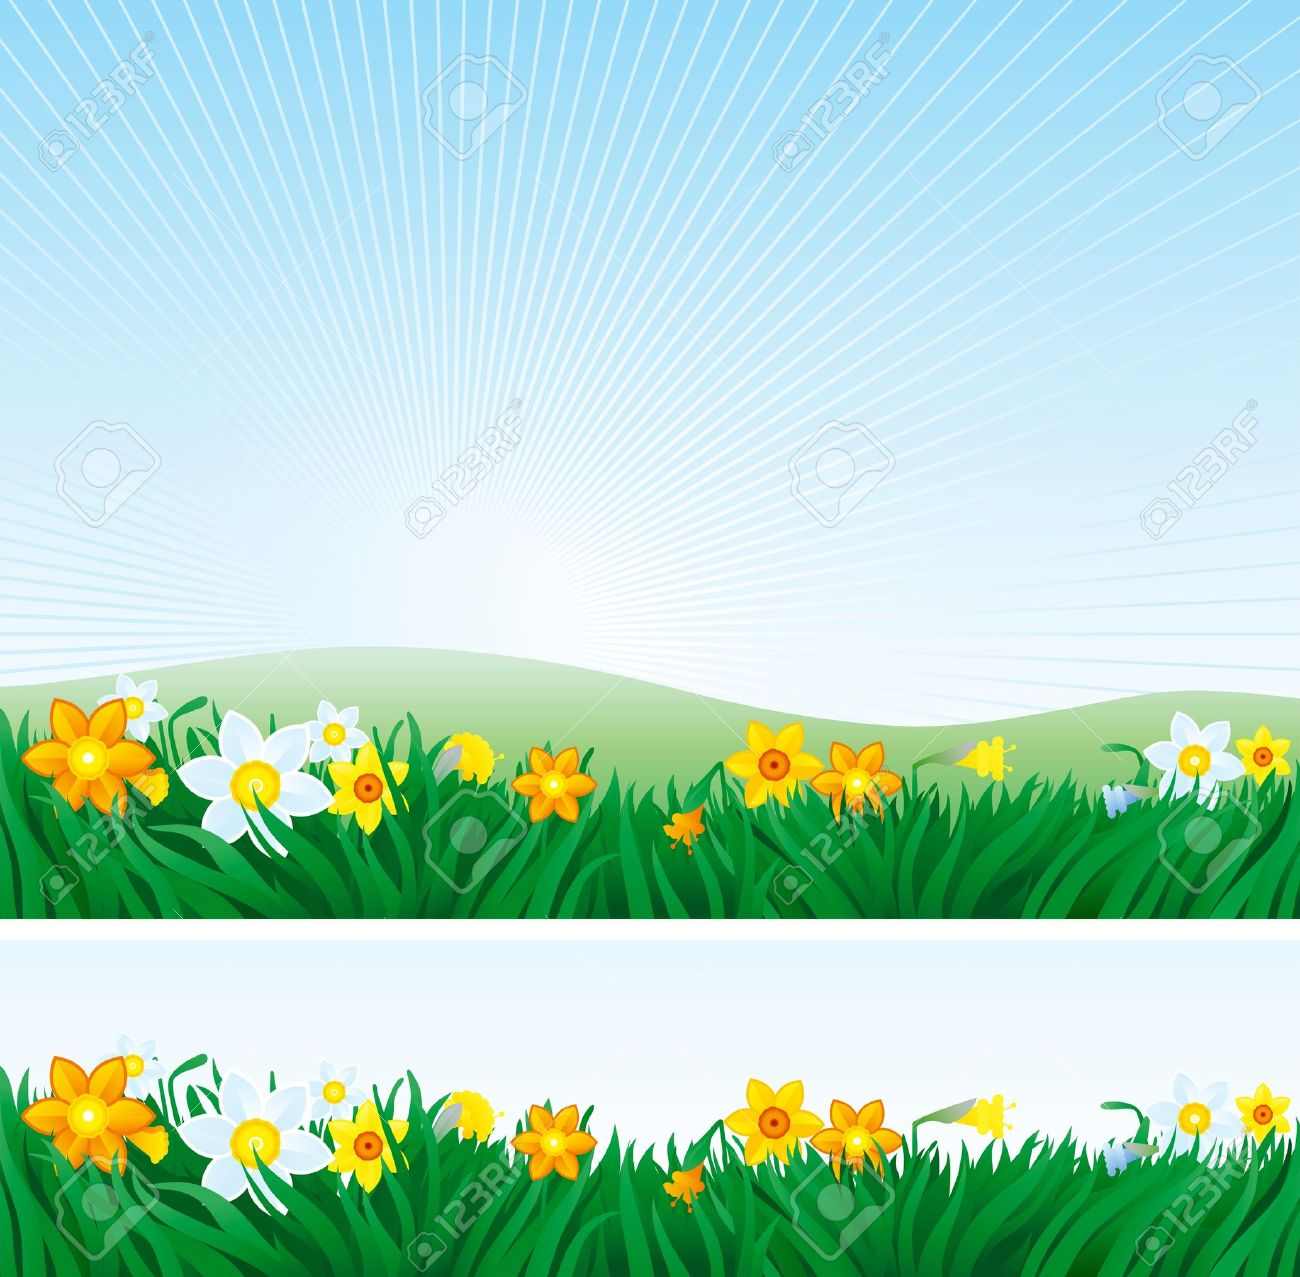 Easter Background And Banner Of Spring Landscape With Yellow White Daffodils Stock Vector